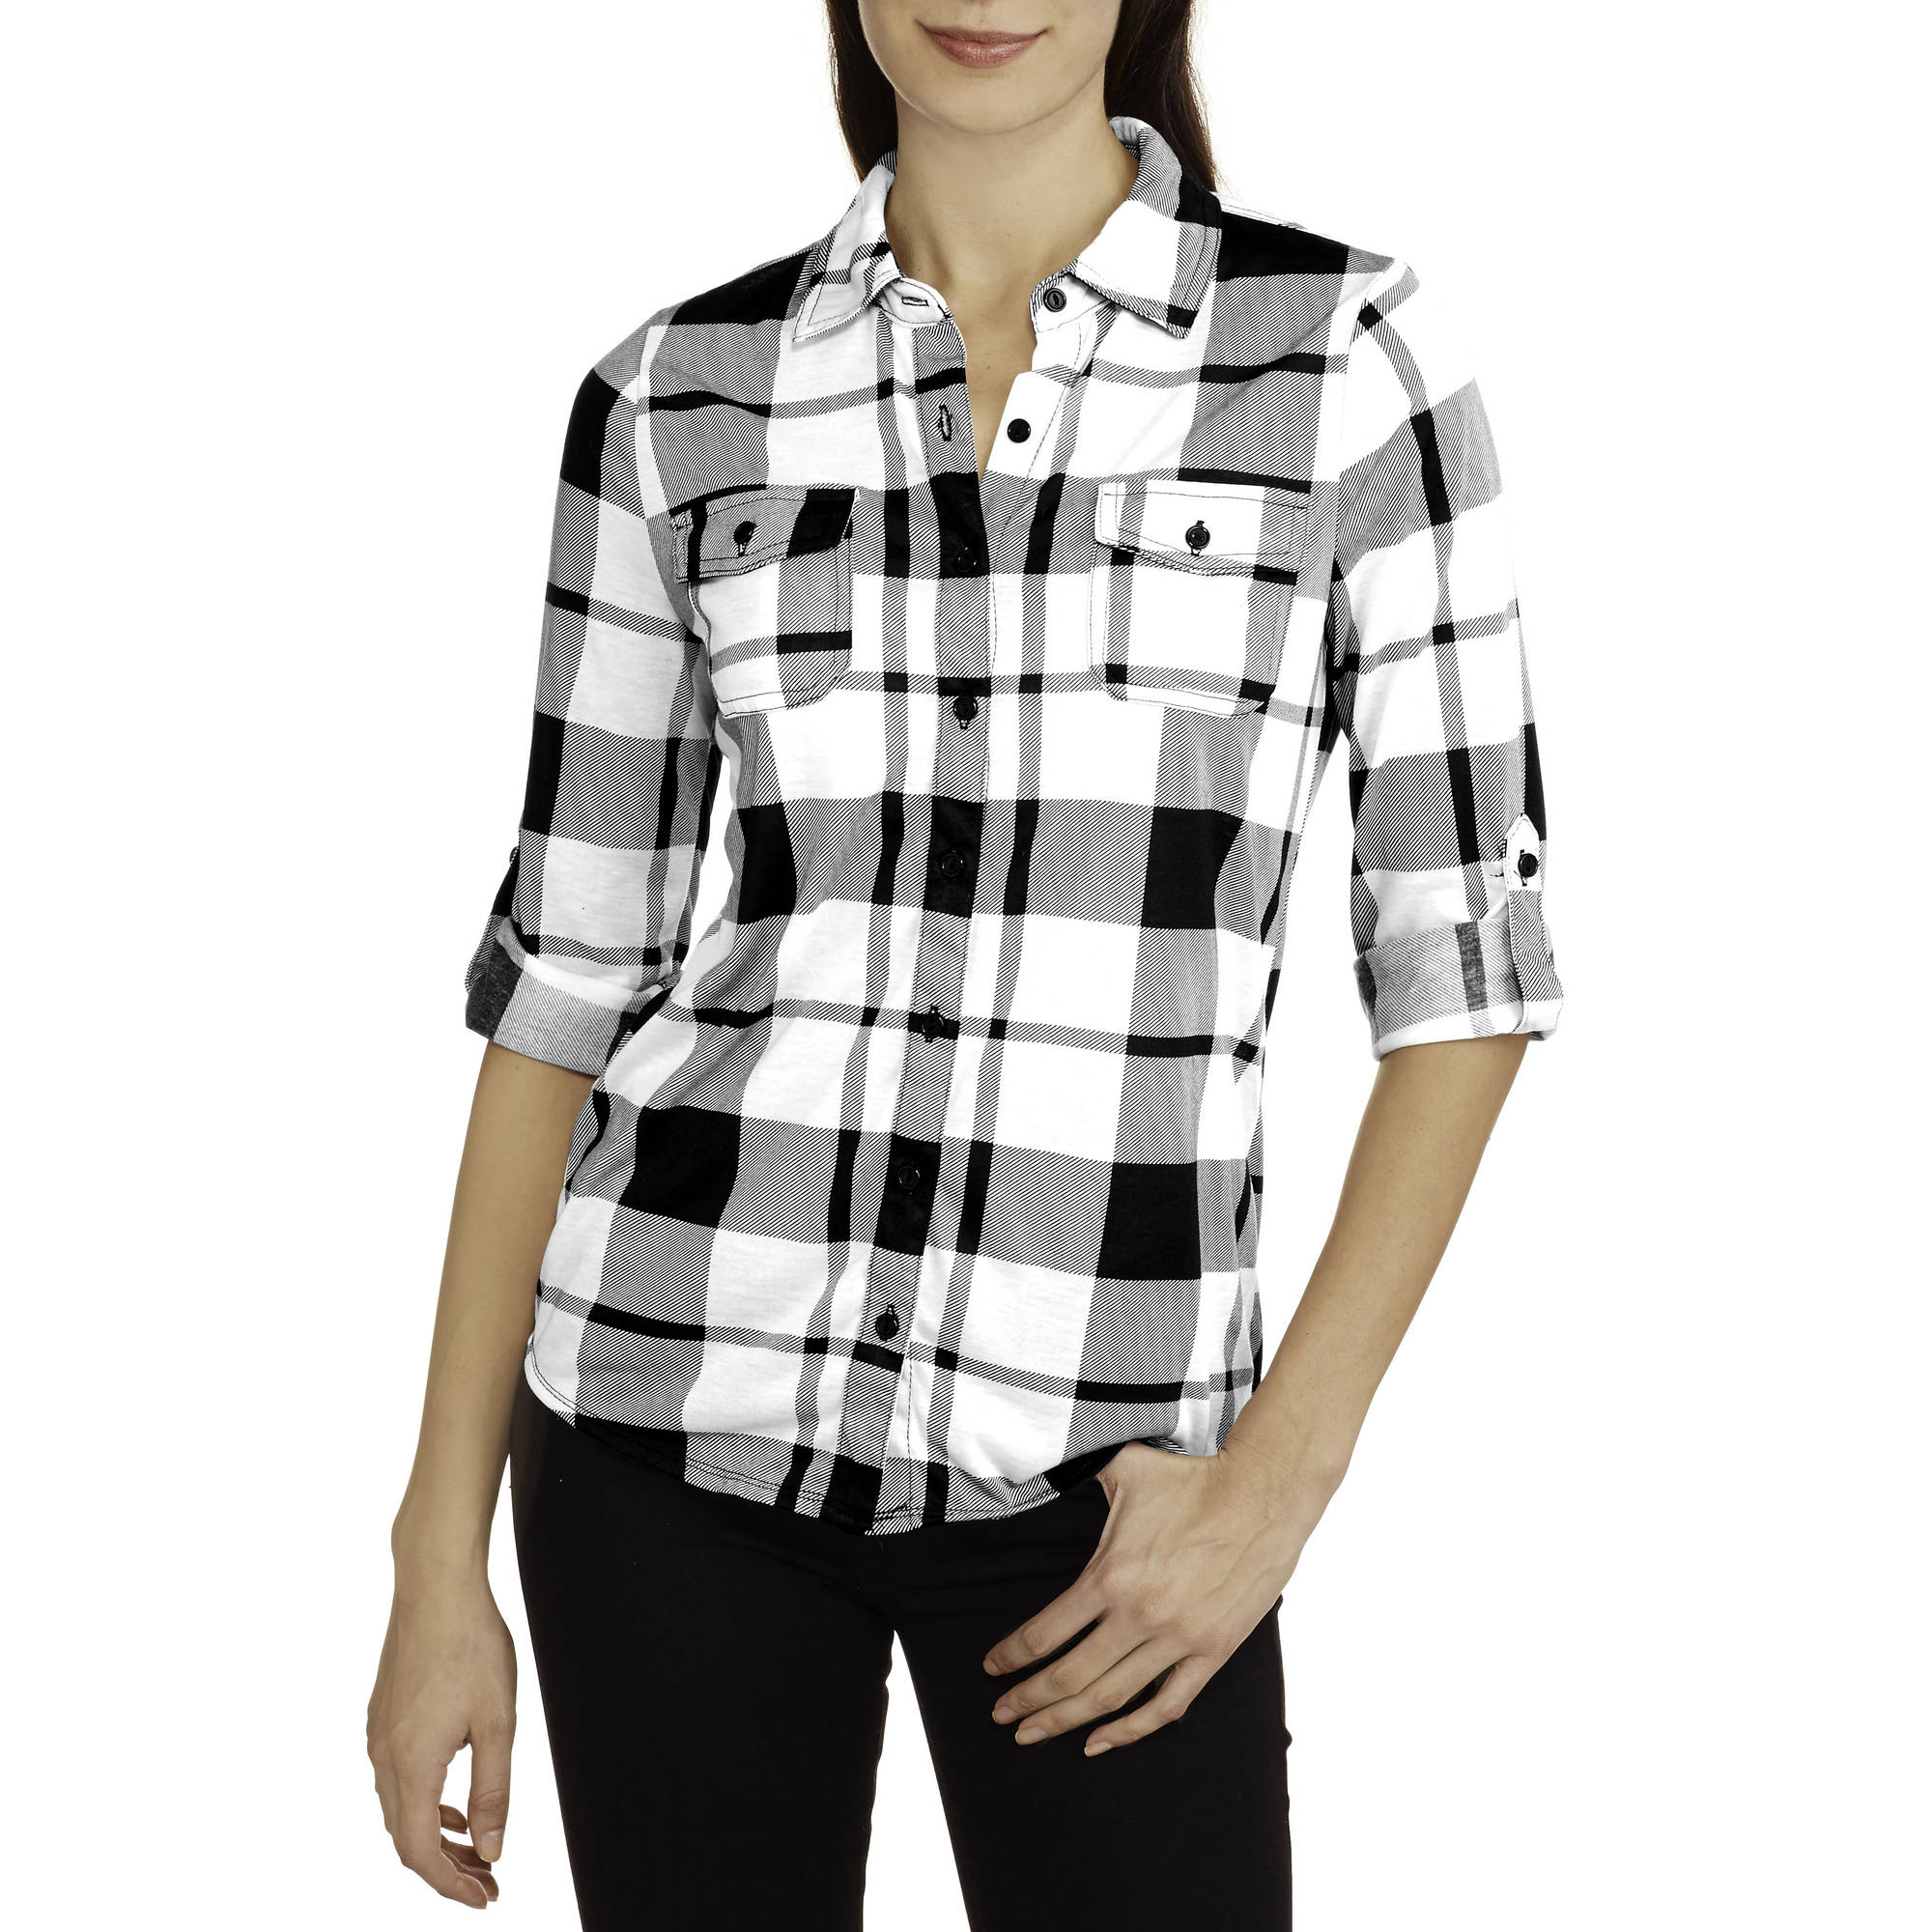 French Laundry Women's Super Soft Knit Button-Front Plaid Shirt